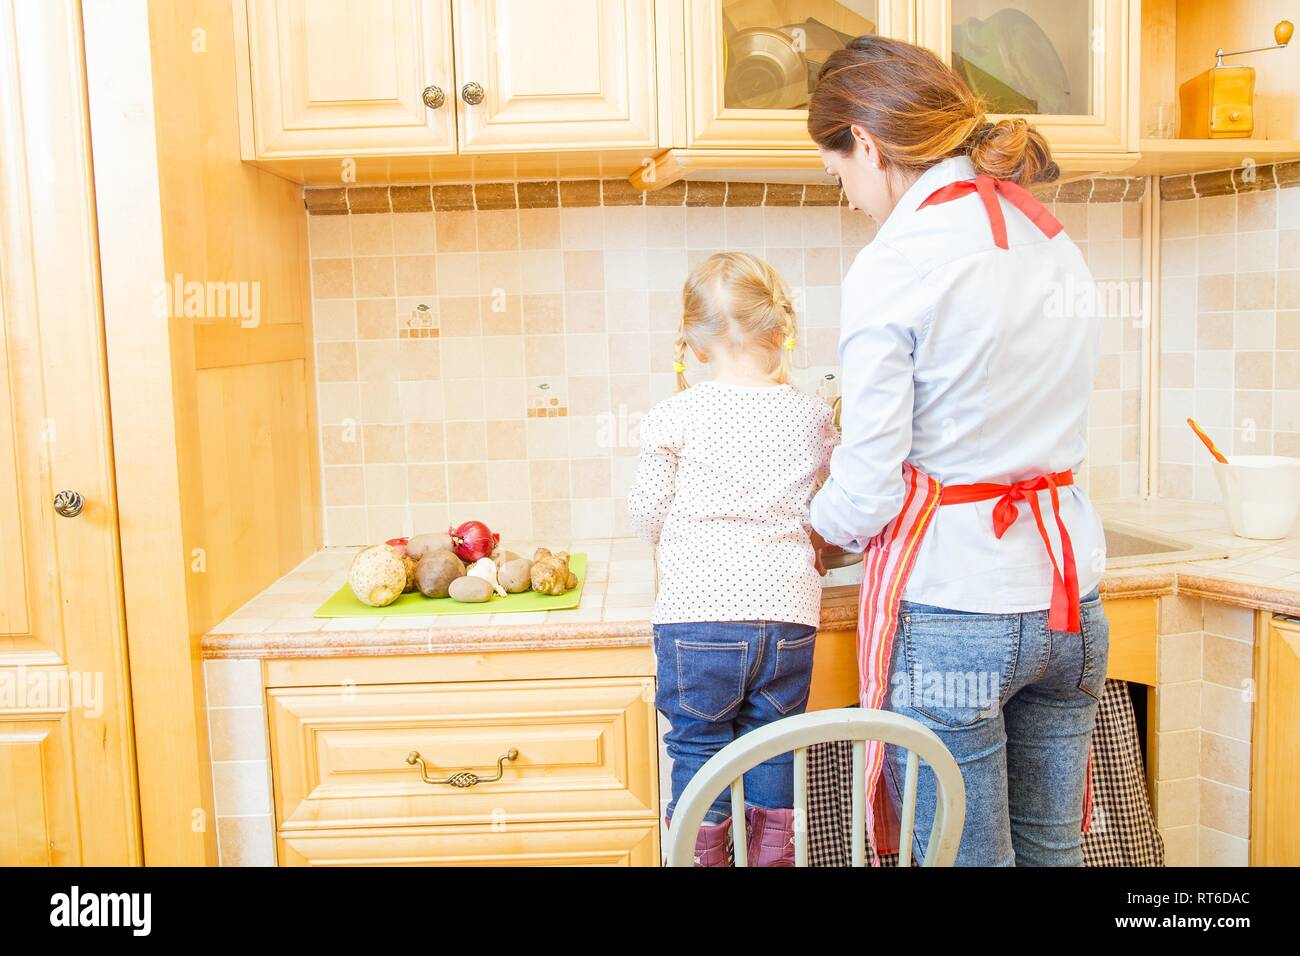 Helping hand given in the kitchen by little daughter. - Stock Image